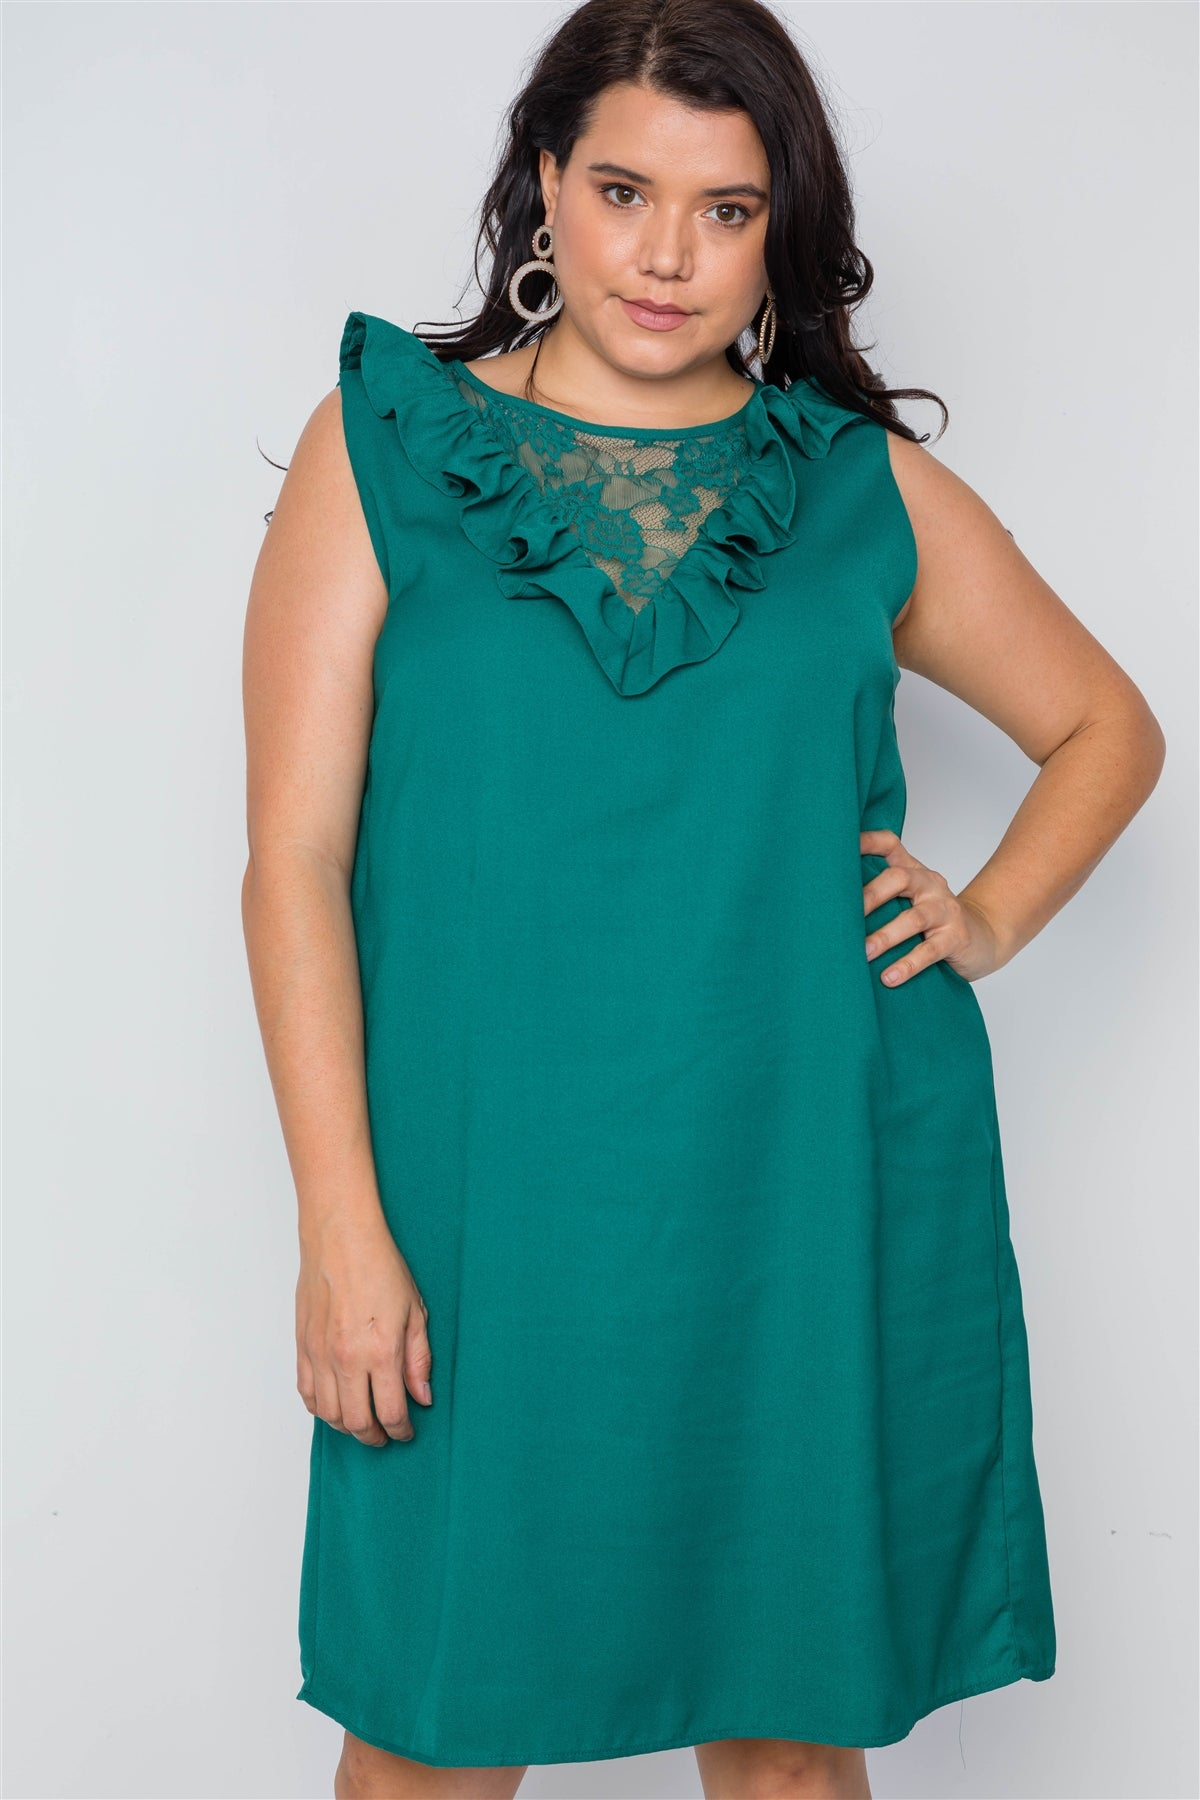 slaythedaybydcole,Plus Size Lace Top Shift Midi Dress,Slay The Day By D Cole,